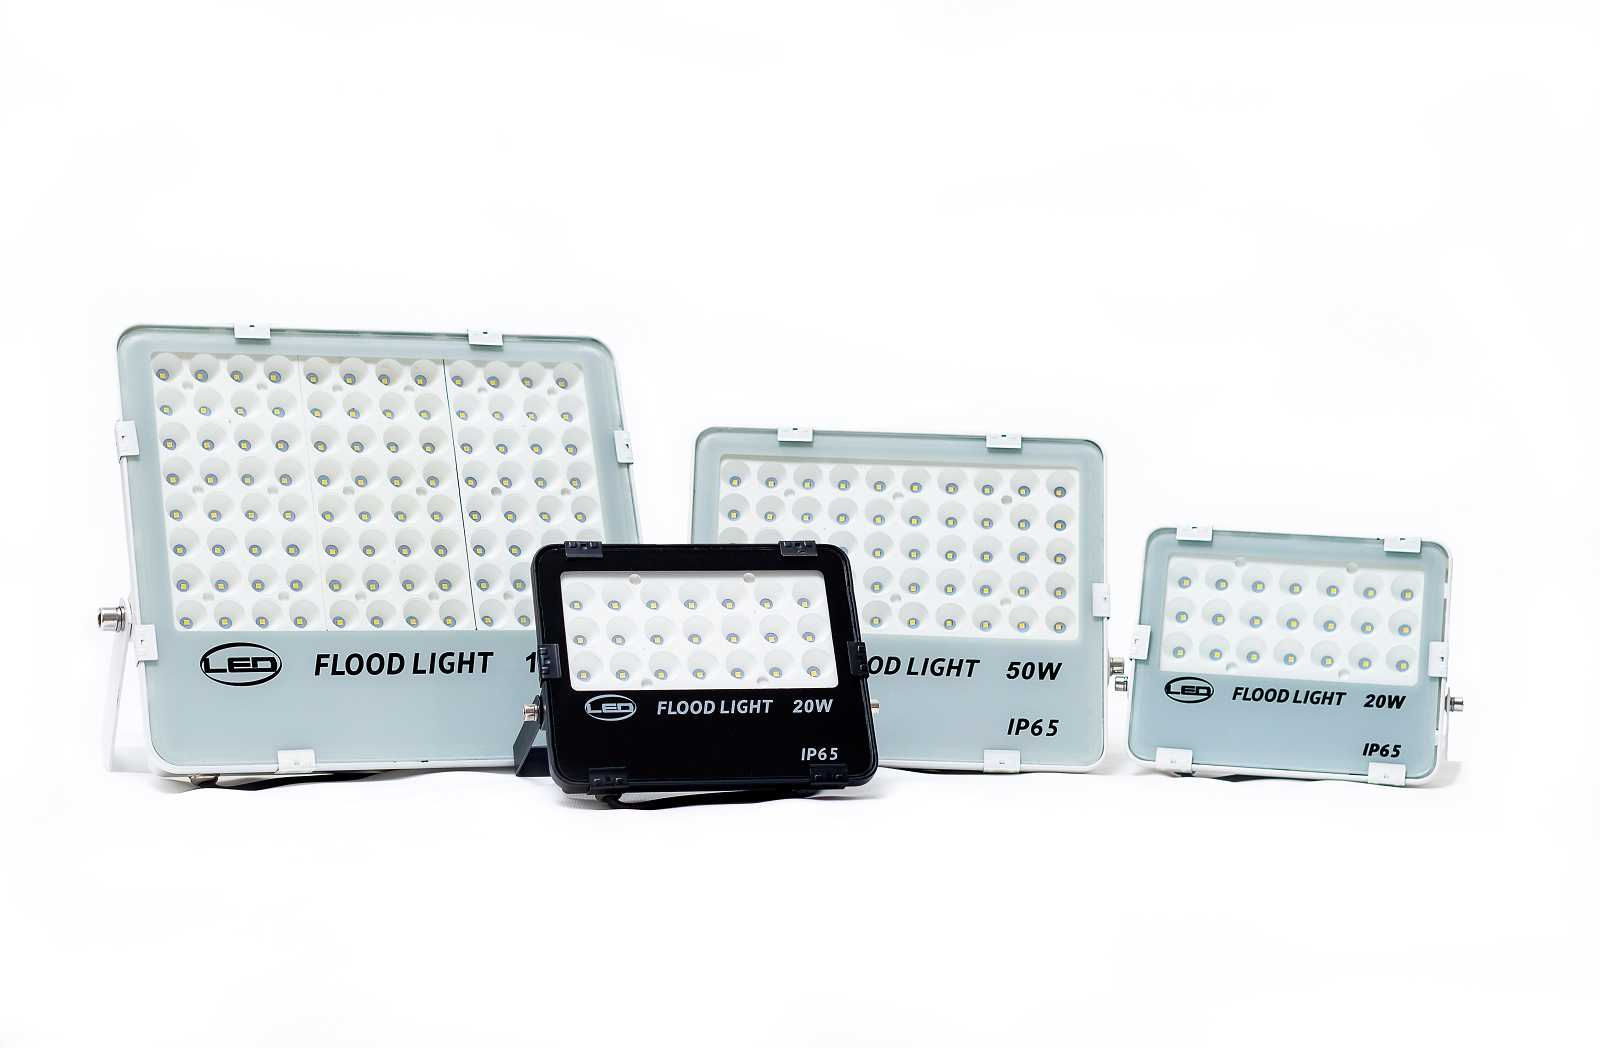 LED Lights from Teclux